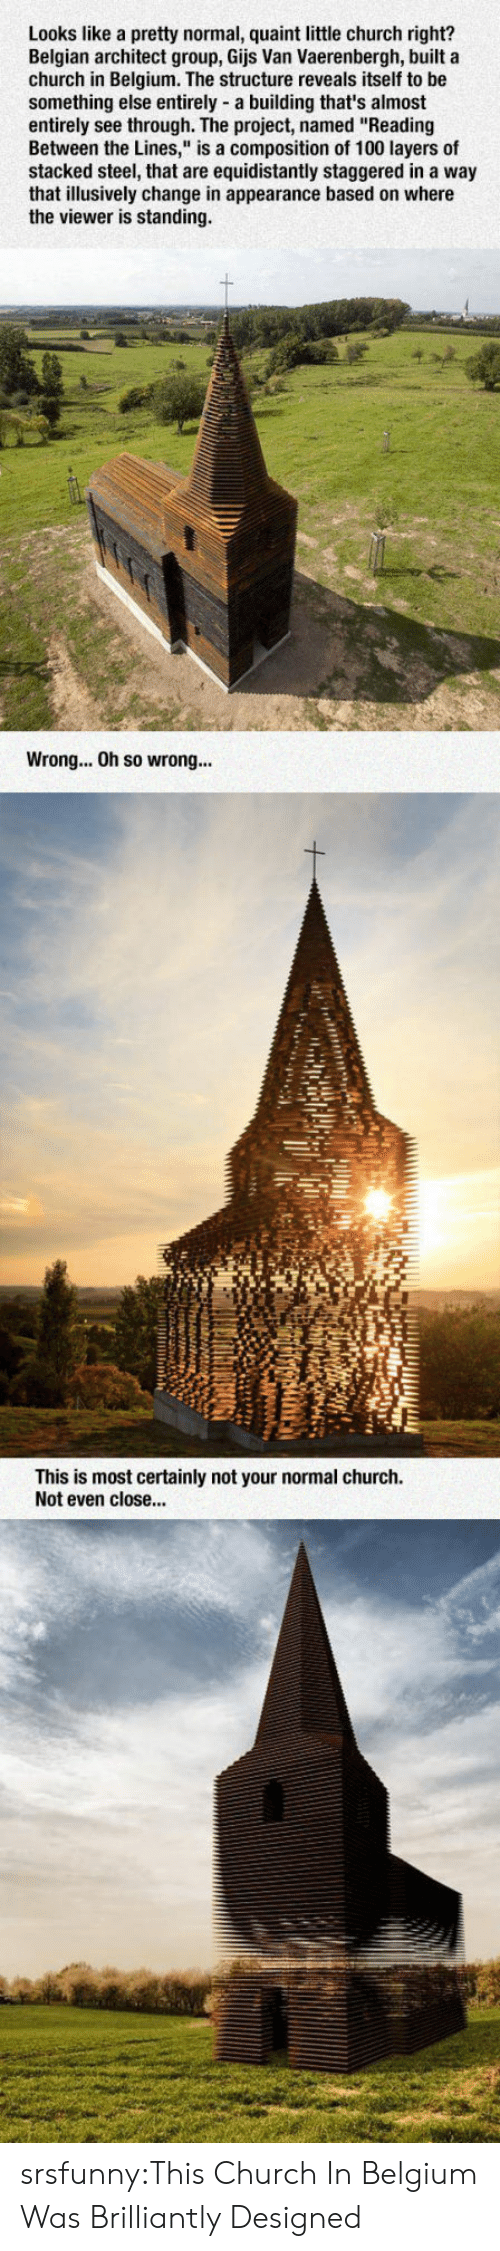 """Anaconda, Belgium, and Church: Looks like a pretty normal, quaint little church right?  Belgian architect group, Gijs Van Vaerenbergh, built a  church in Belgium. The structure reveals itself to be  something else entirely-a building that's almost  entirely see through. The project, named """"Reading  Between the Lines,"""" is a composition of 100 layers of  stacked steel, that are equidistantly staggered in a way  that illusively change in appearance based on where  the viewer is standing  Wrong... Oh so wron...  This is most certainly not your normal church.  Not even close.. srsfunny:This Church In Belgium Was Brilliantly Designed"""